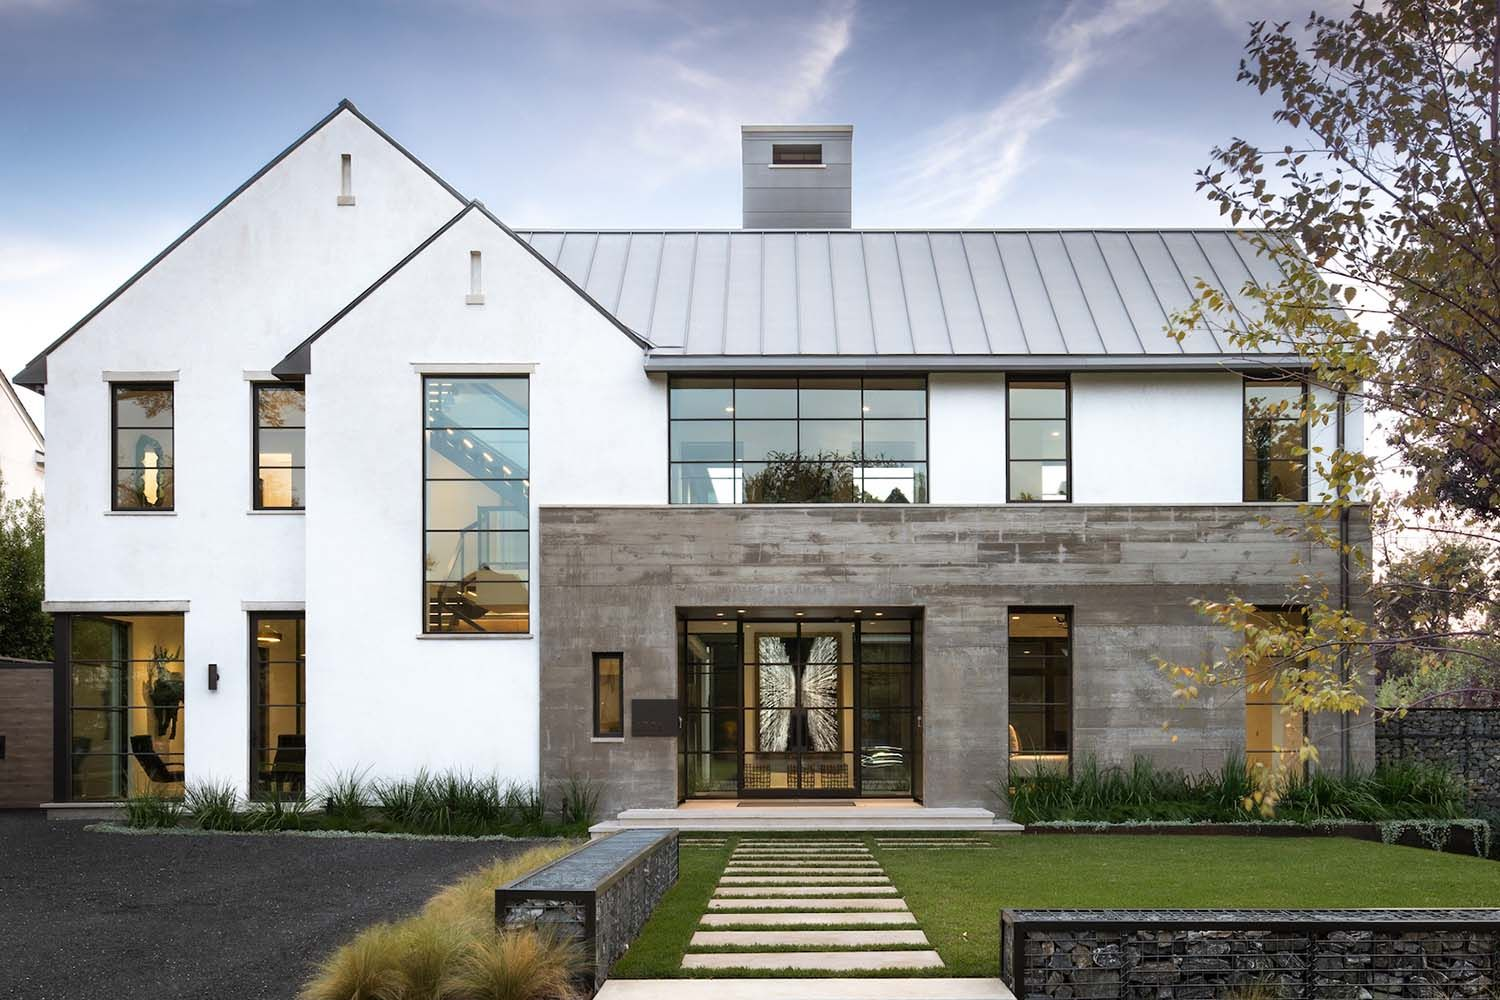 Outstanding contemporary home in Texas with inspiring